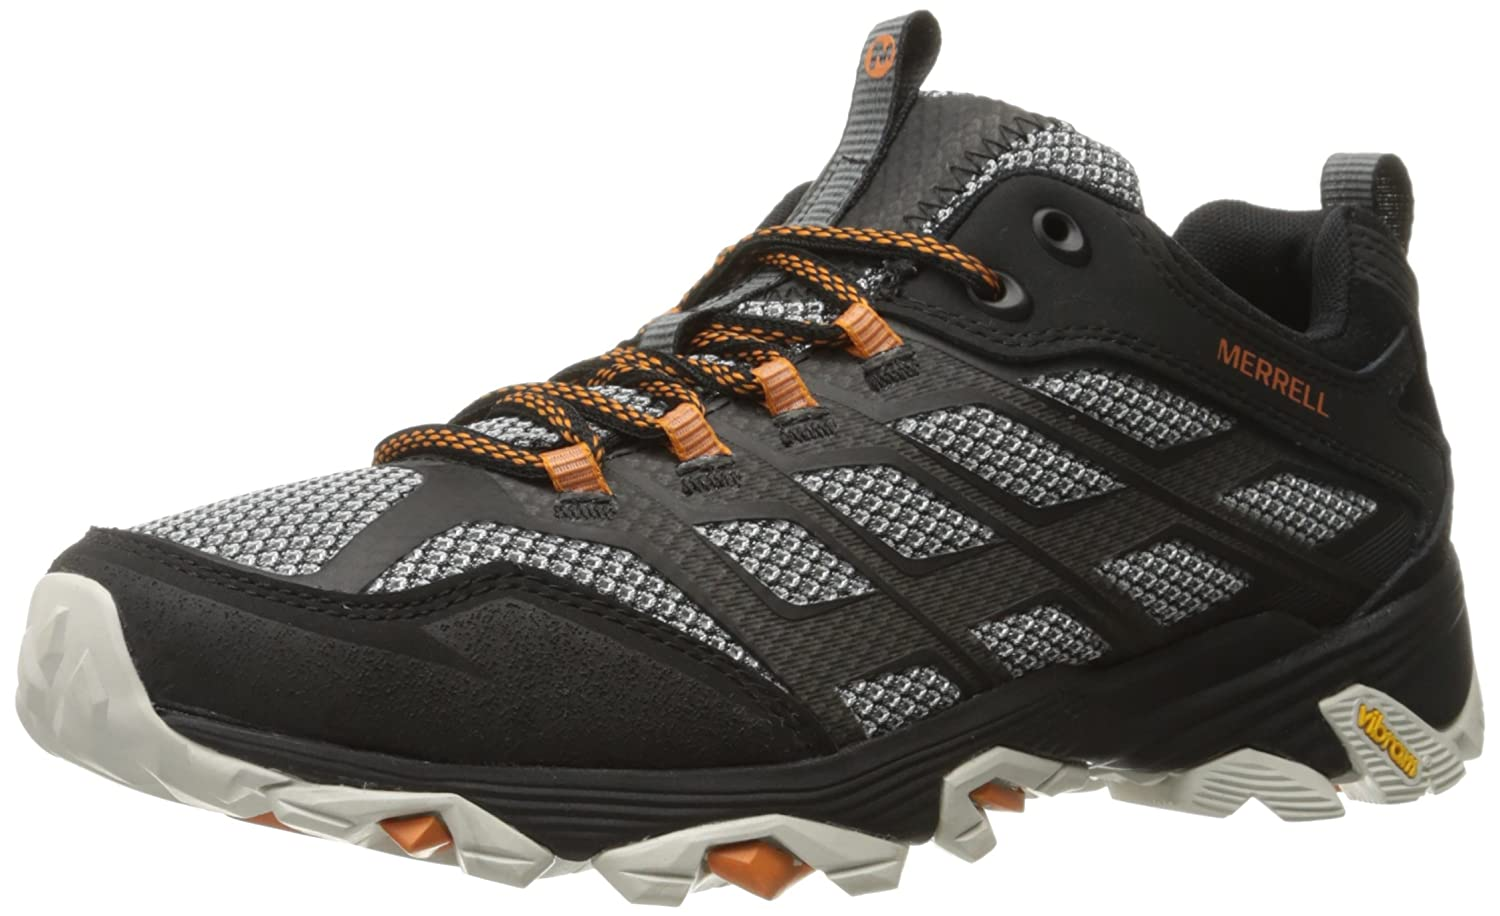 Merrell Men's Moab FST Hiking Shoe B0195L8GQY 7.5 W US|Black